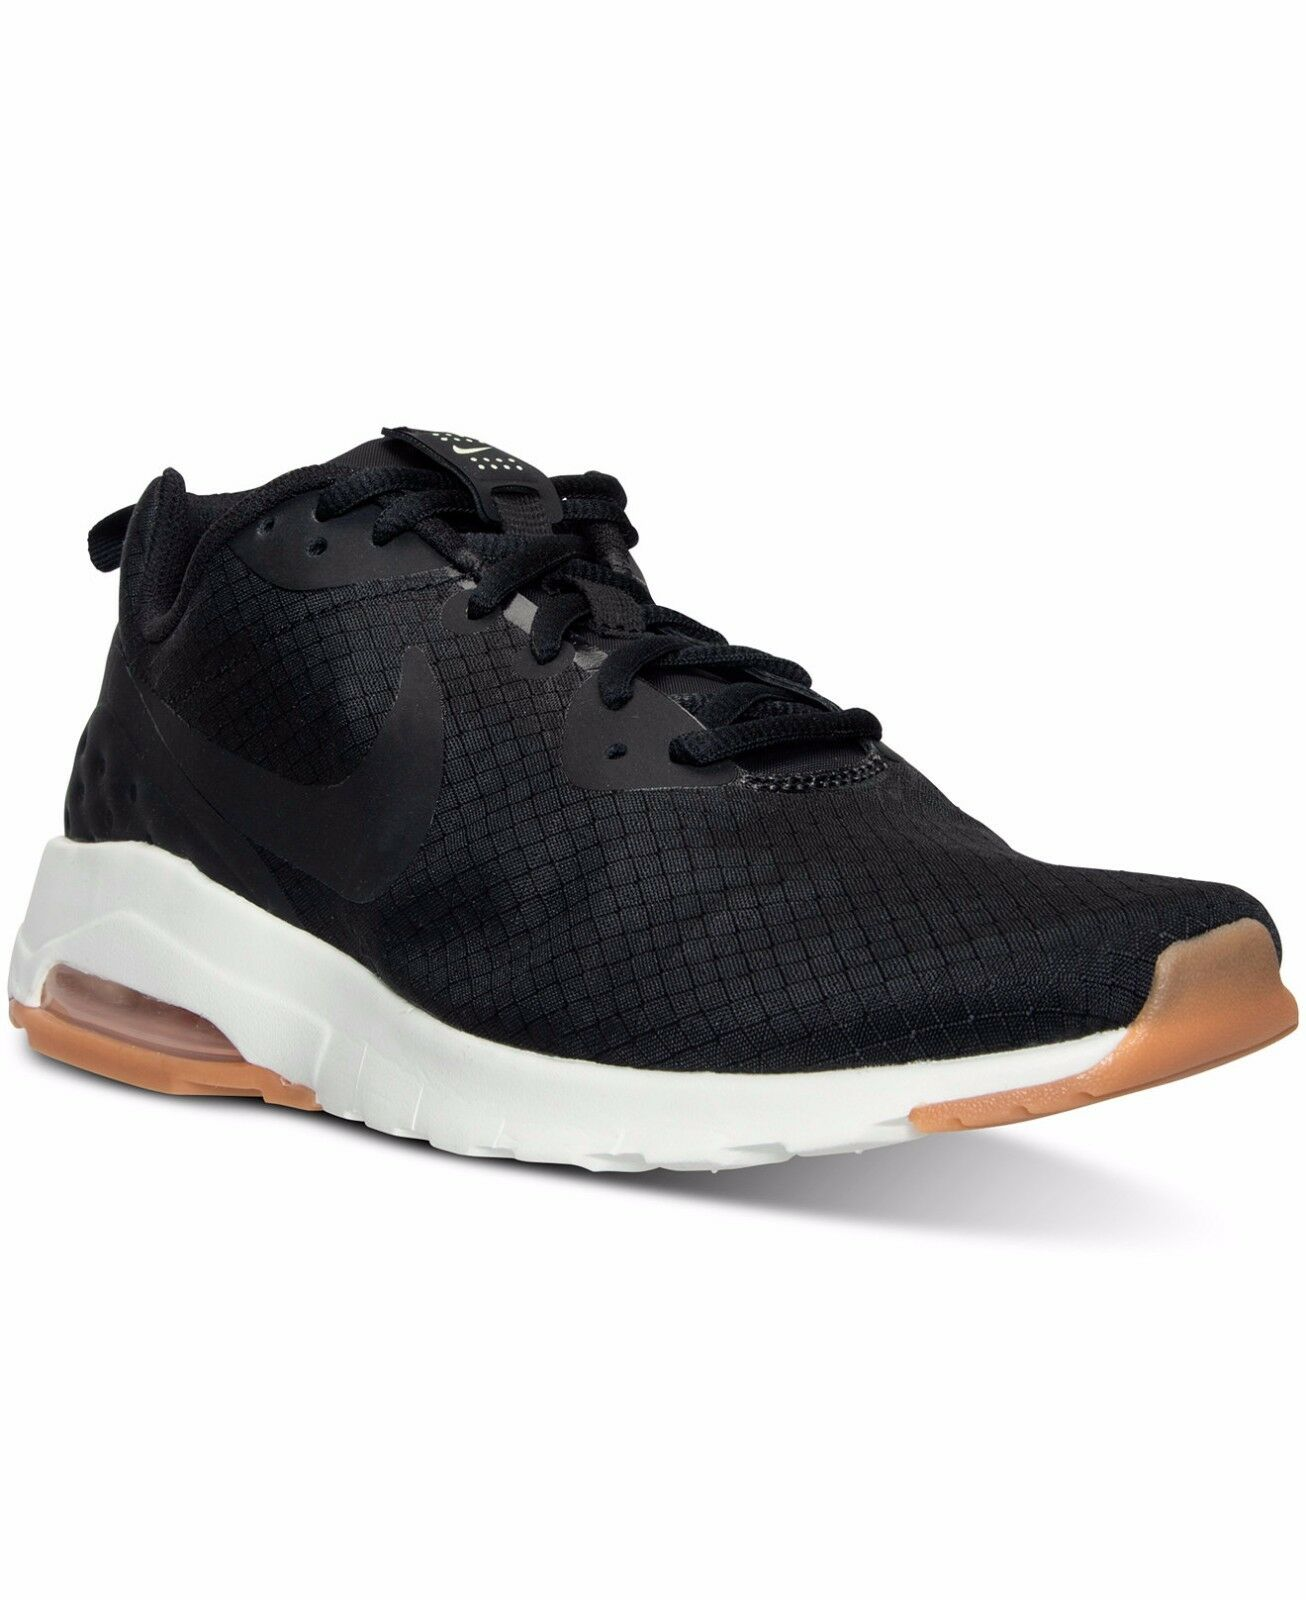 Men's Nike Air Max Motion LW SE Running shoes, 844836 001 Size 14 BLACK BLAC